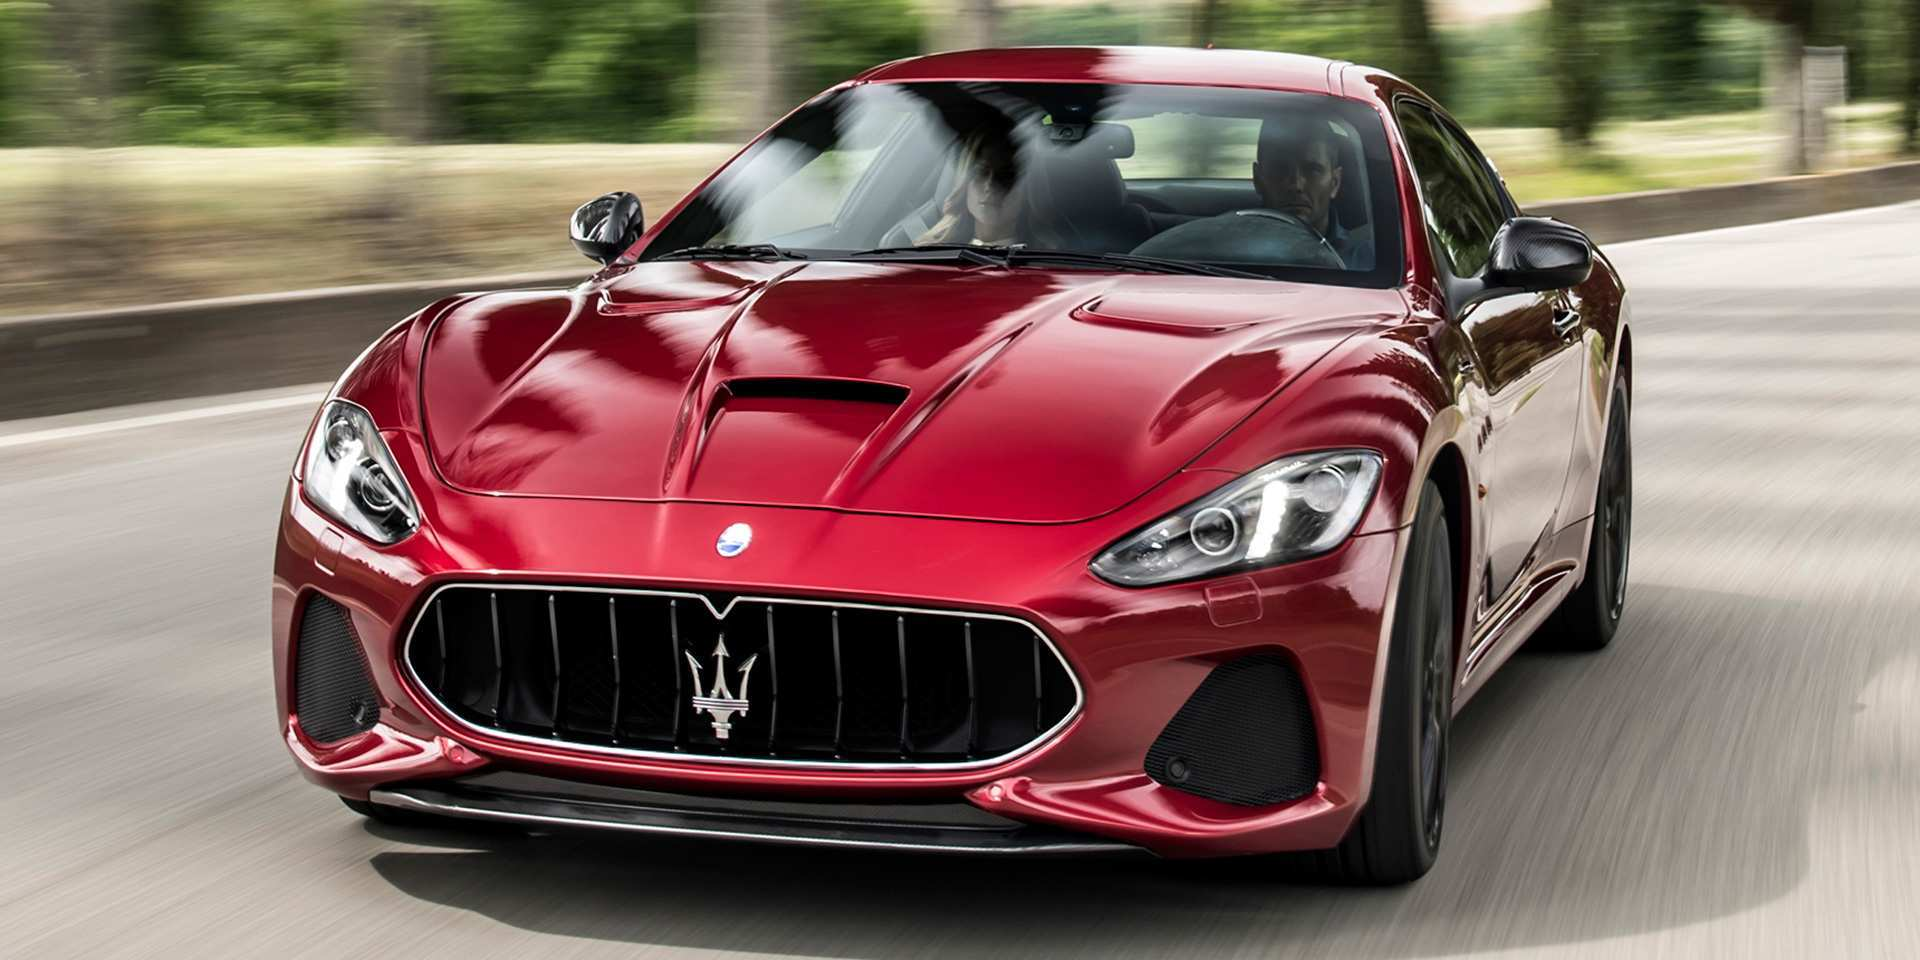 77 The Best 2019 Maserati Gt New Concept